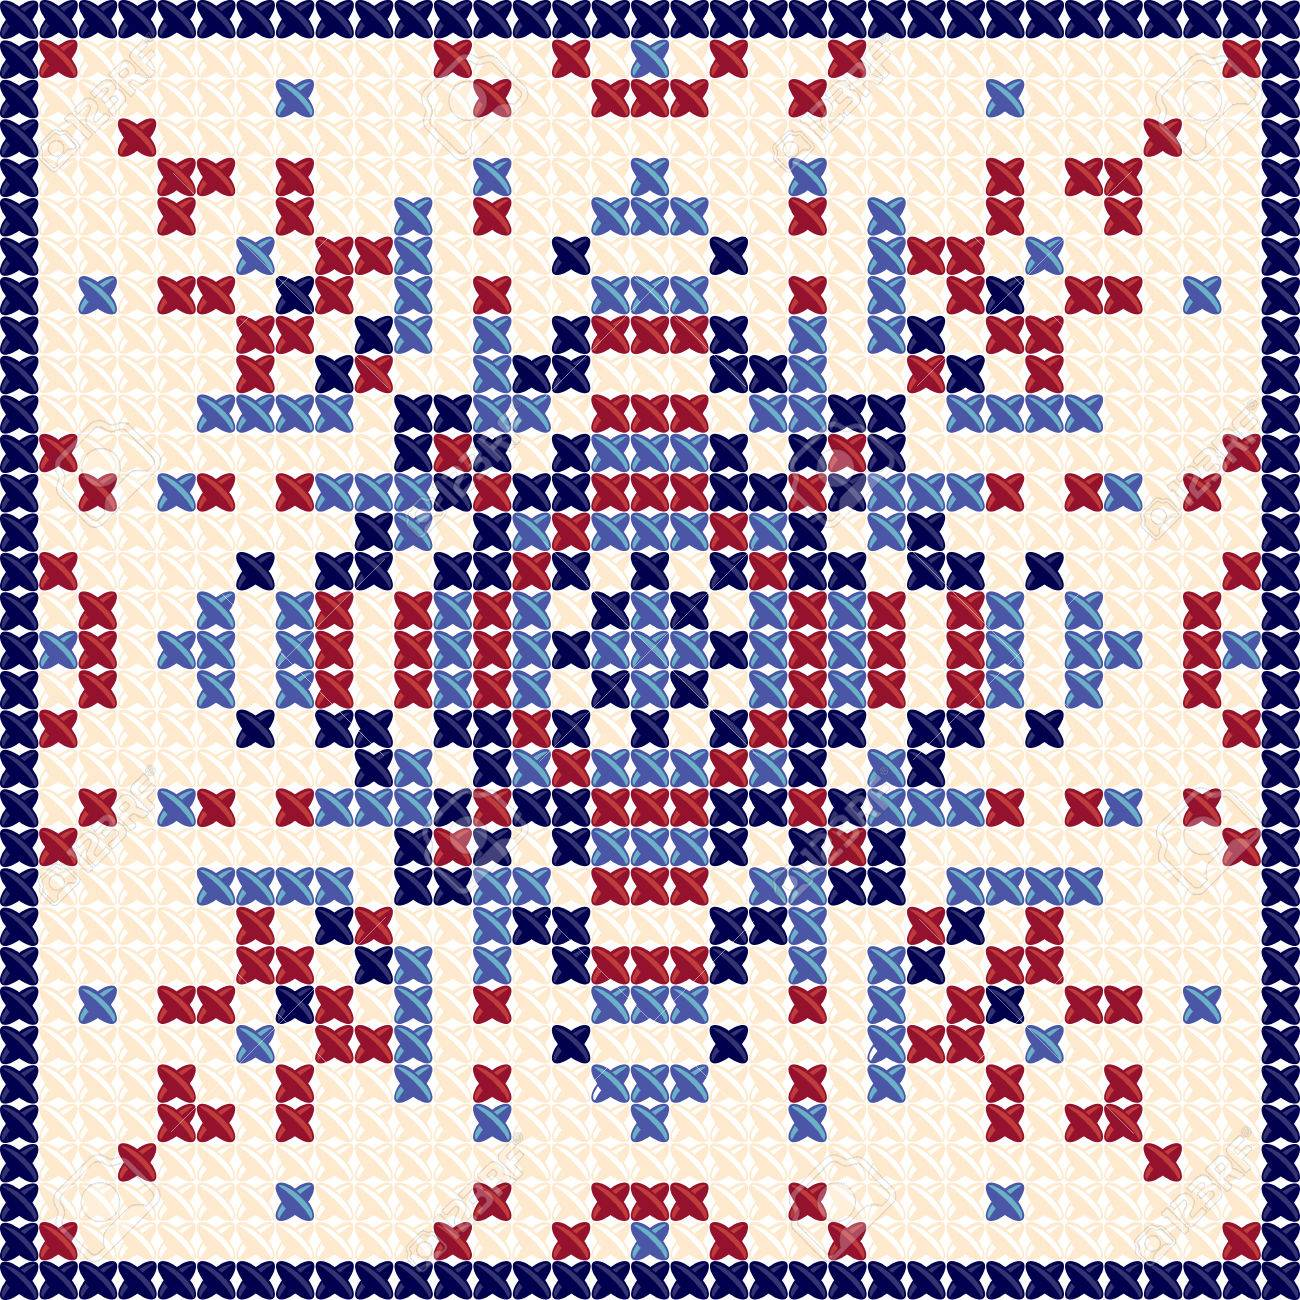 Cross Stitch Pattern Textile Pattern Tapestry Background And Royalty Free Cliparts Vectors And Stock Illustration Image 54277906